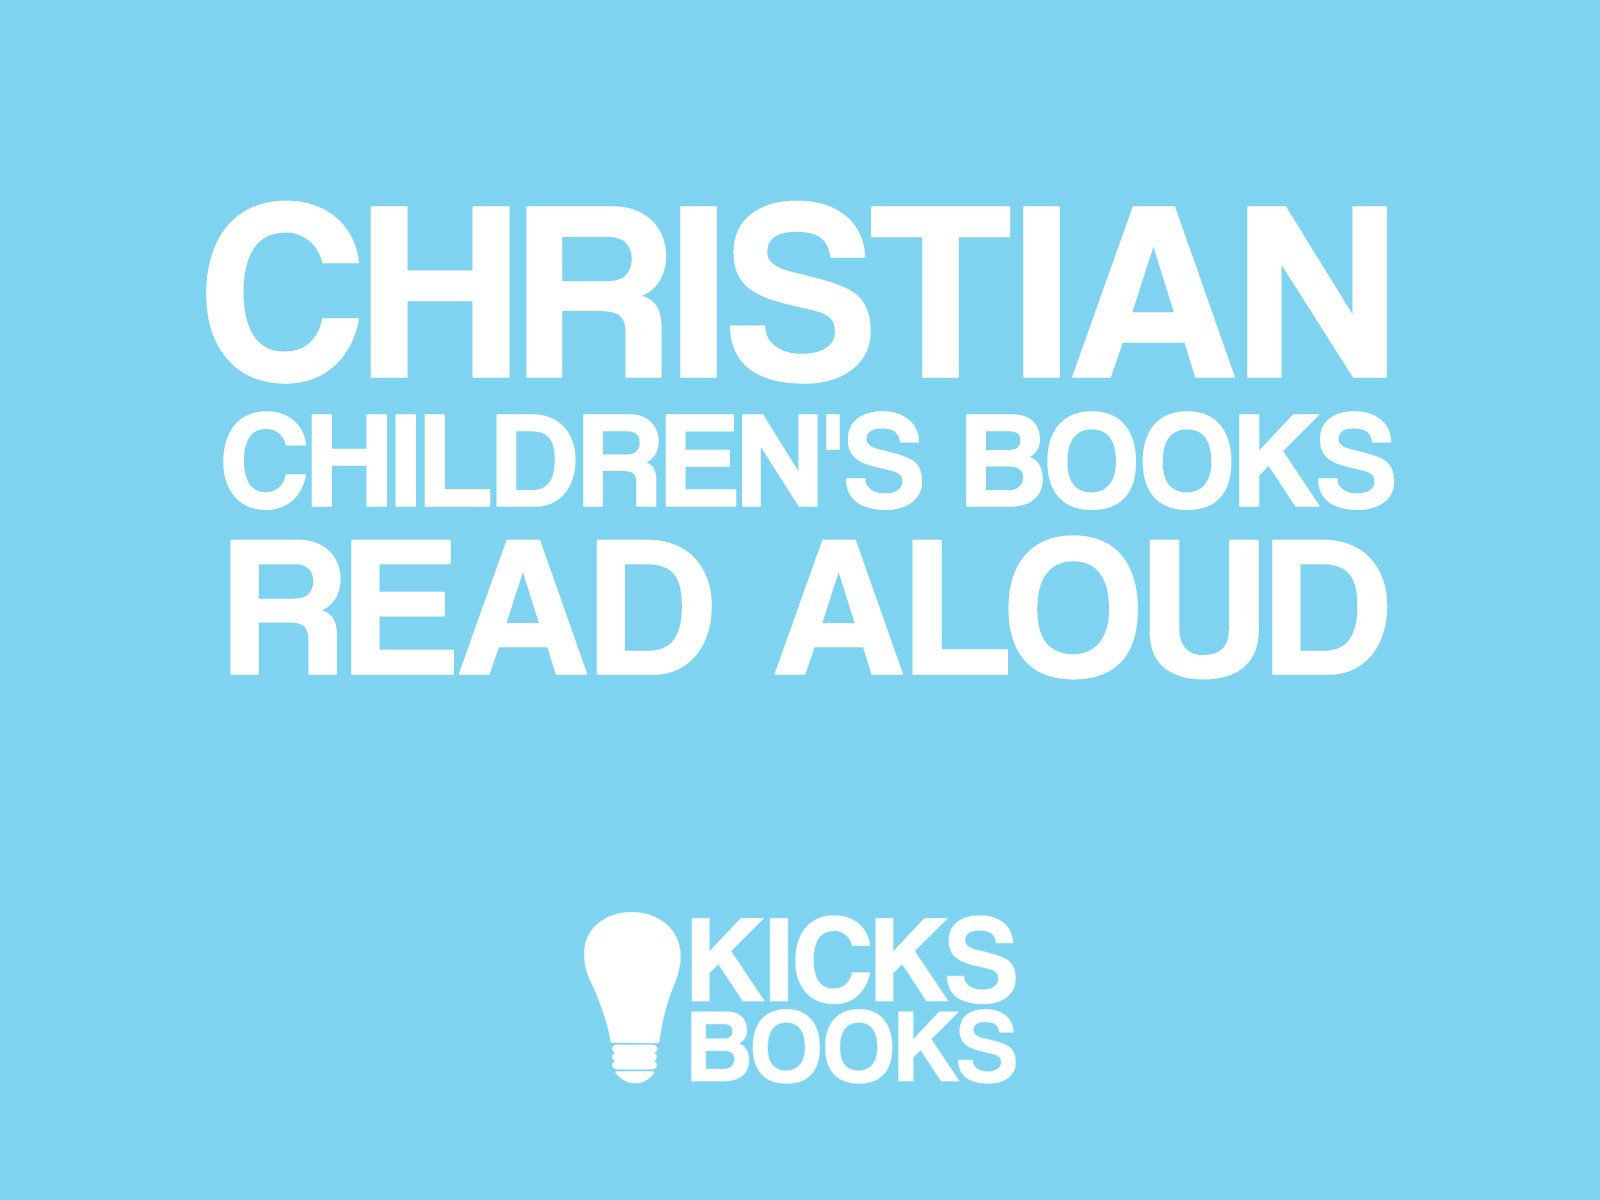 Christian Children's Books Read Aloud | Kicks Books - Season 1